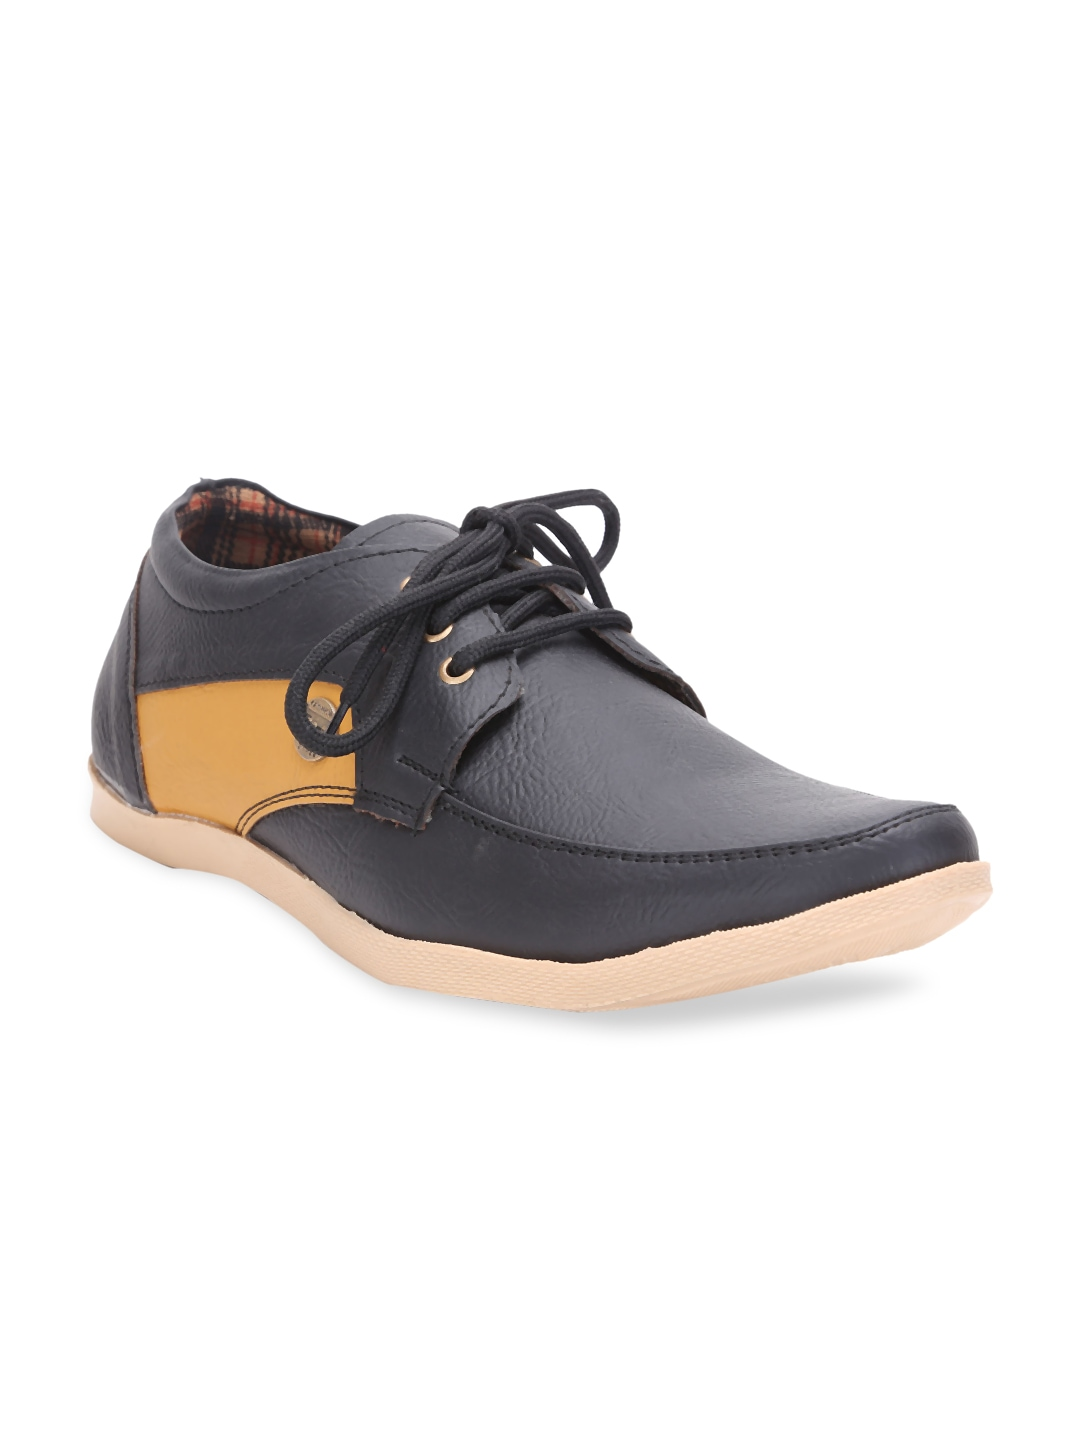 quarks men black boat shoes view product details more casual shoes by